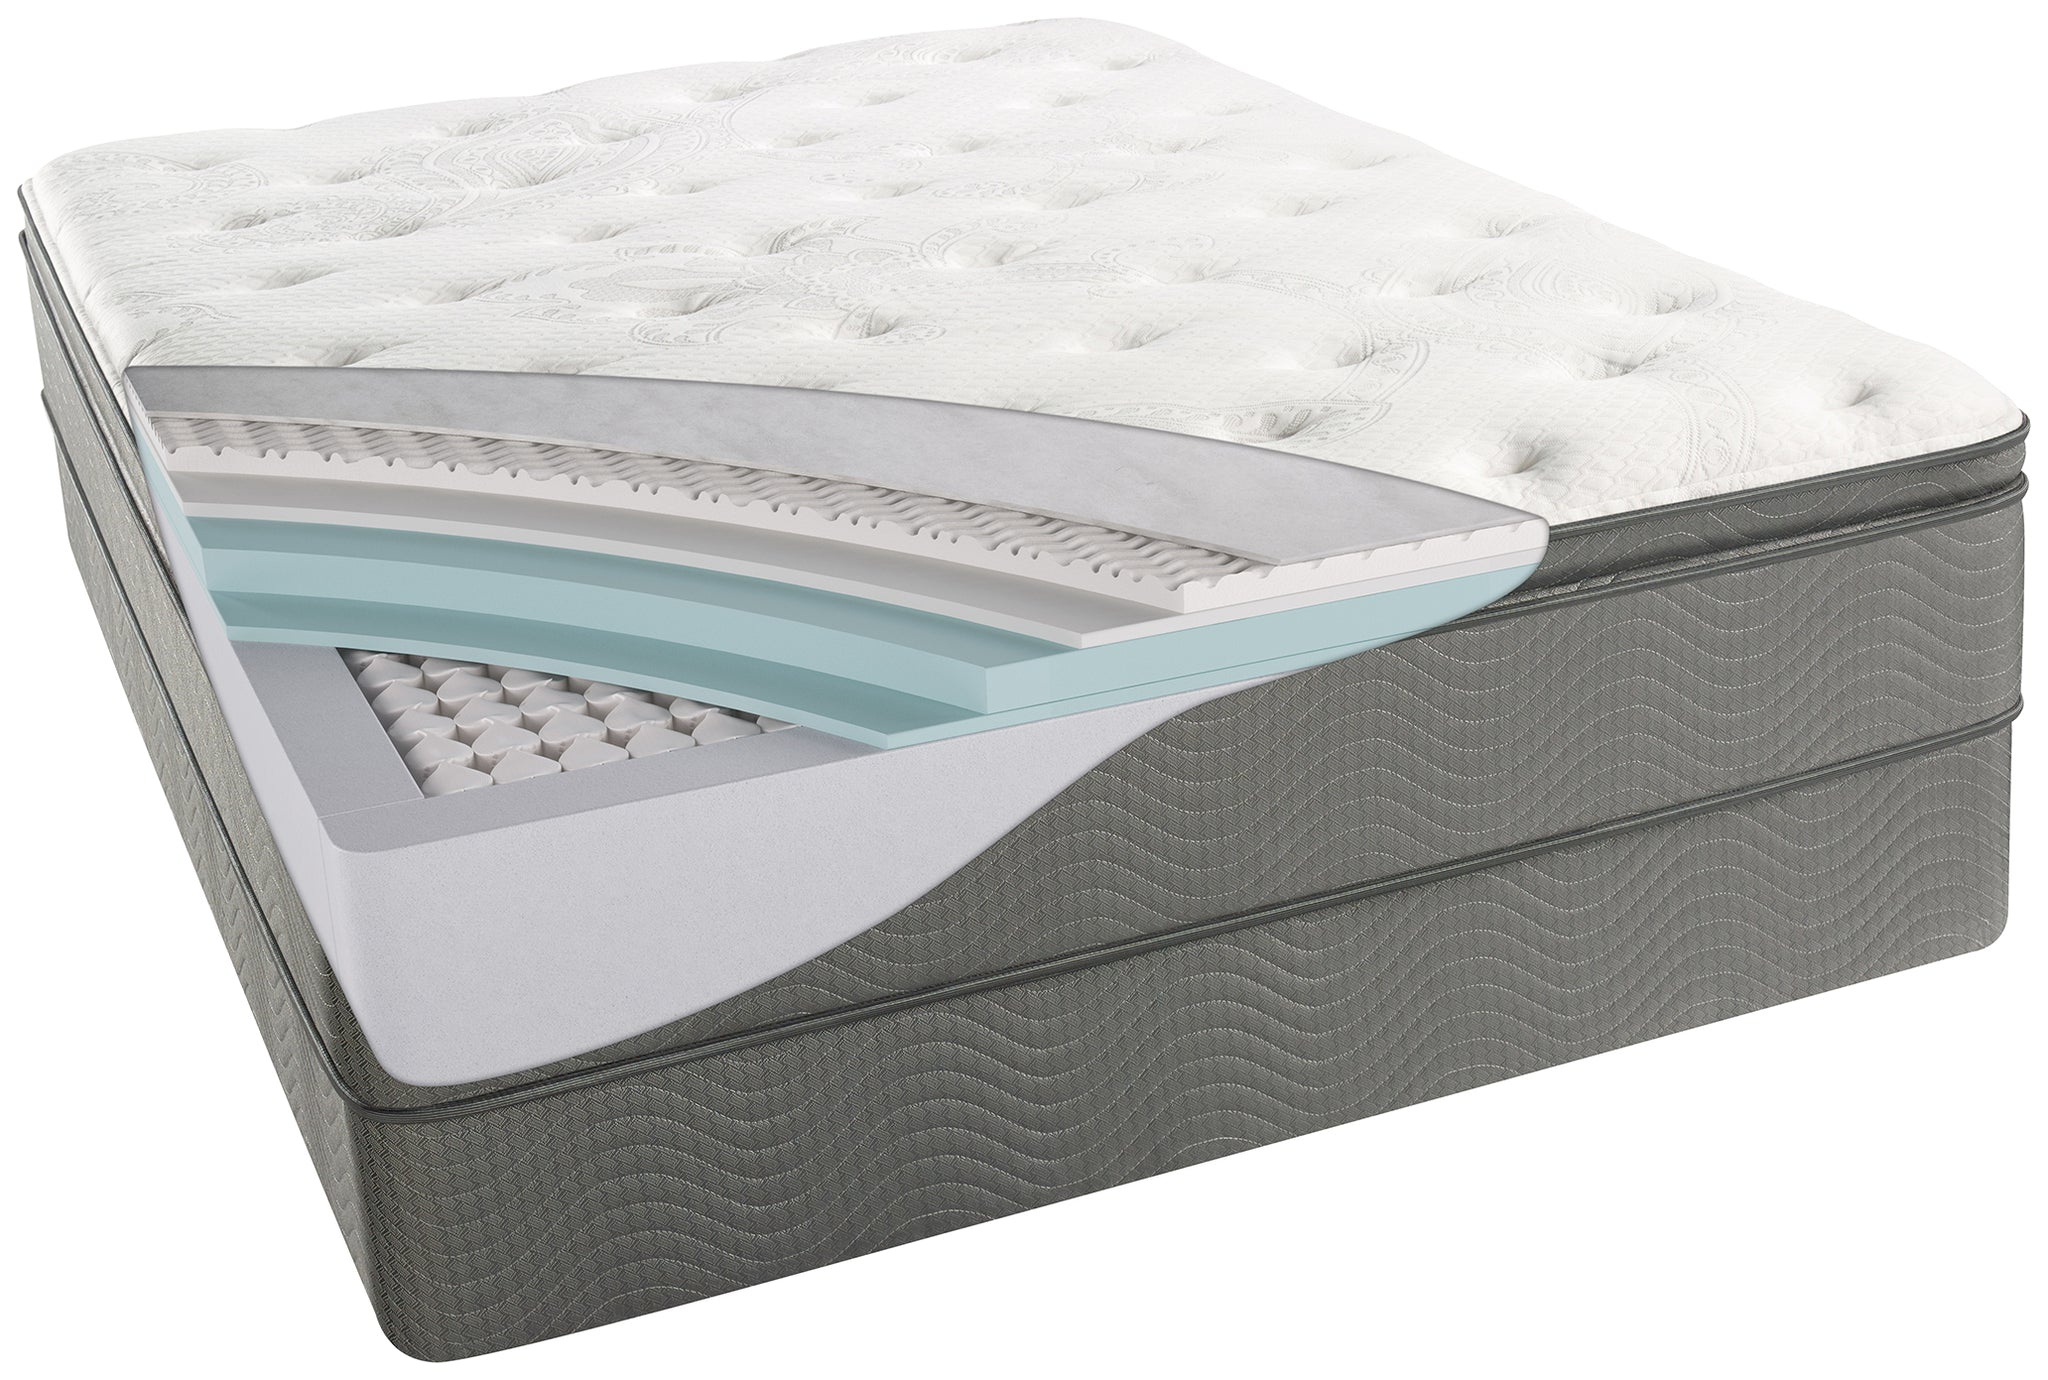 spring box top topper mattress king memory pillow size dimensions full and amazon walmart foam